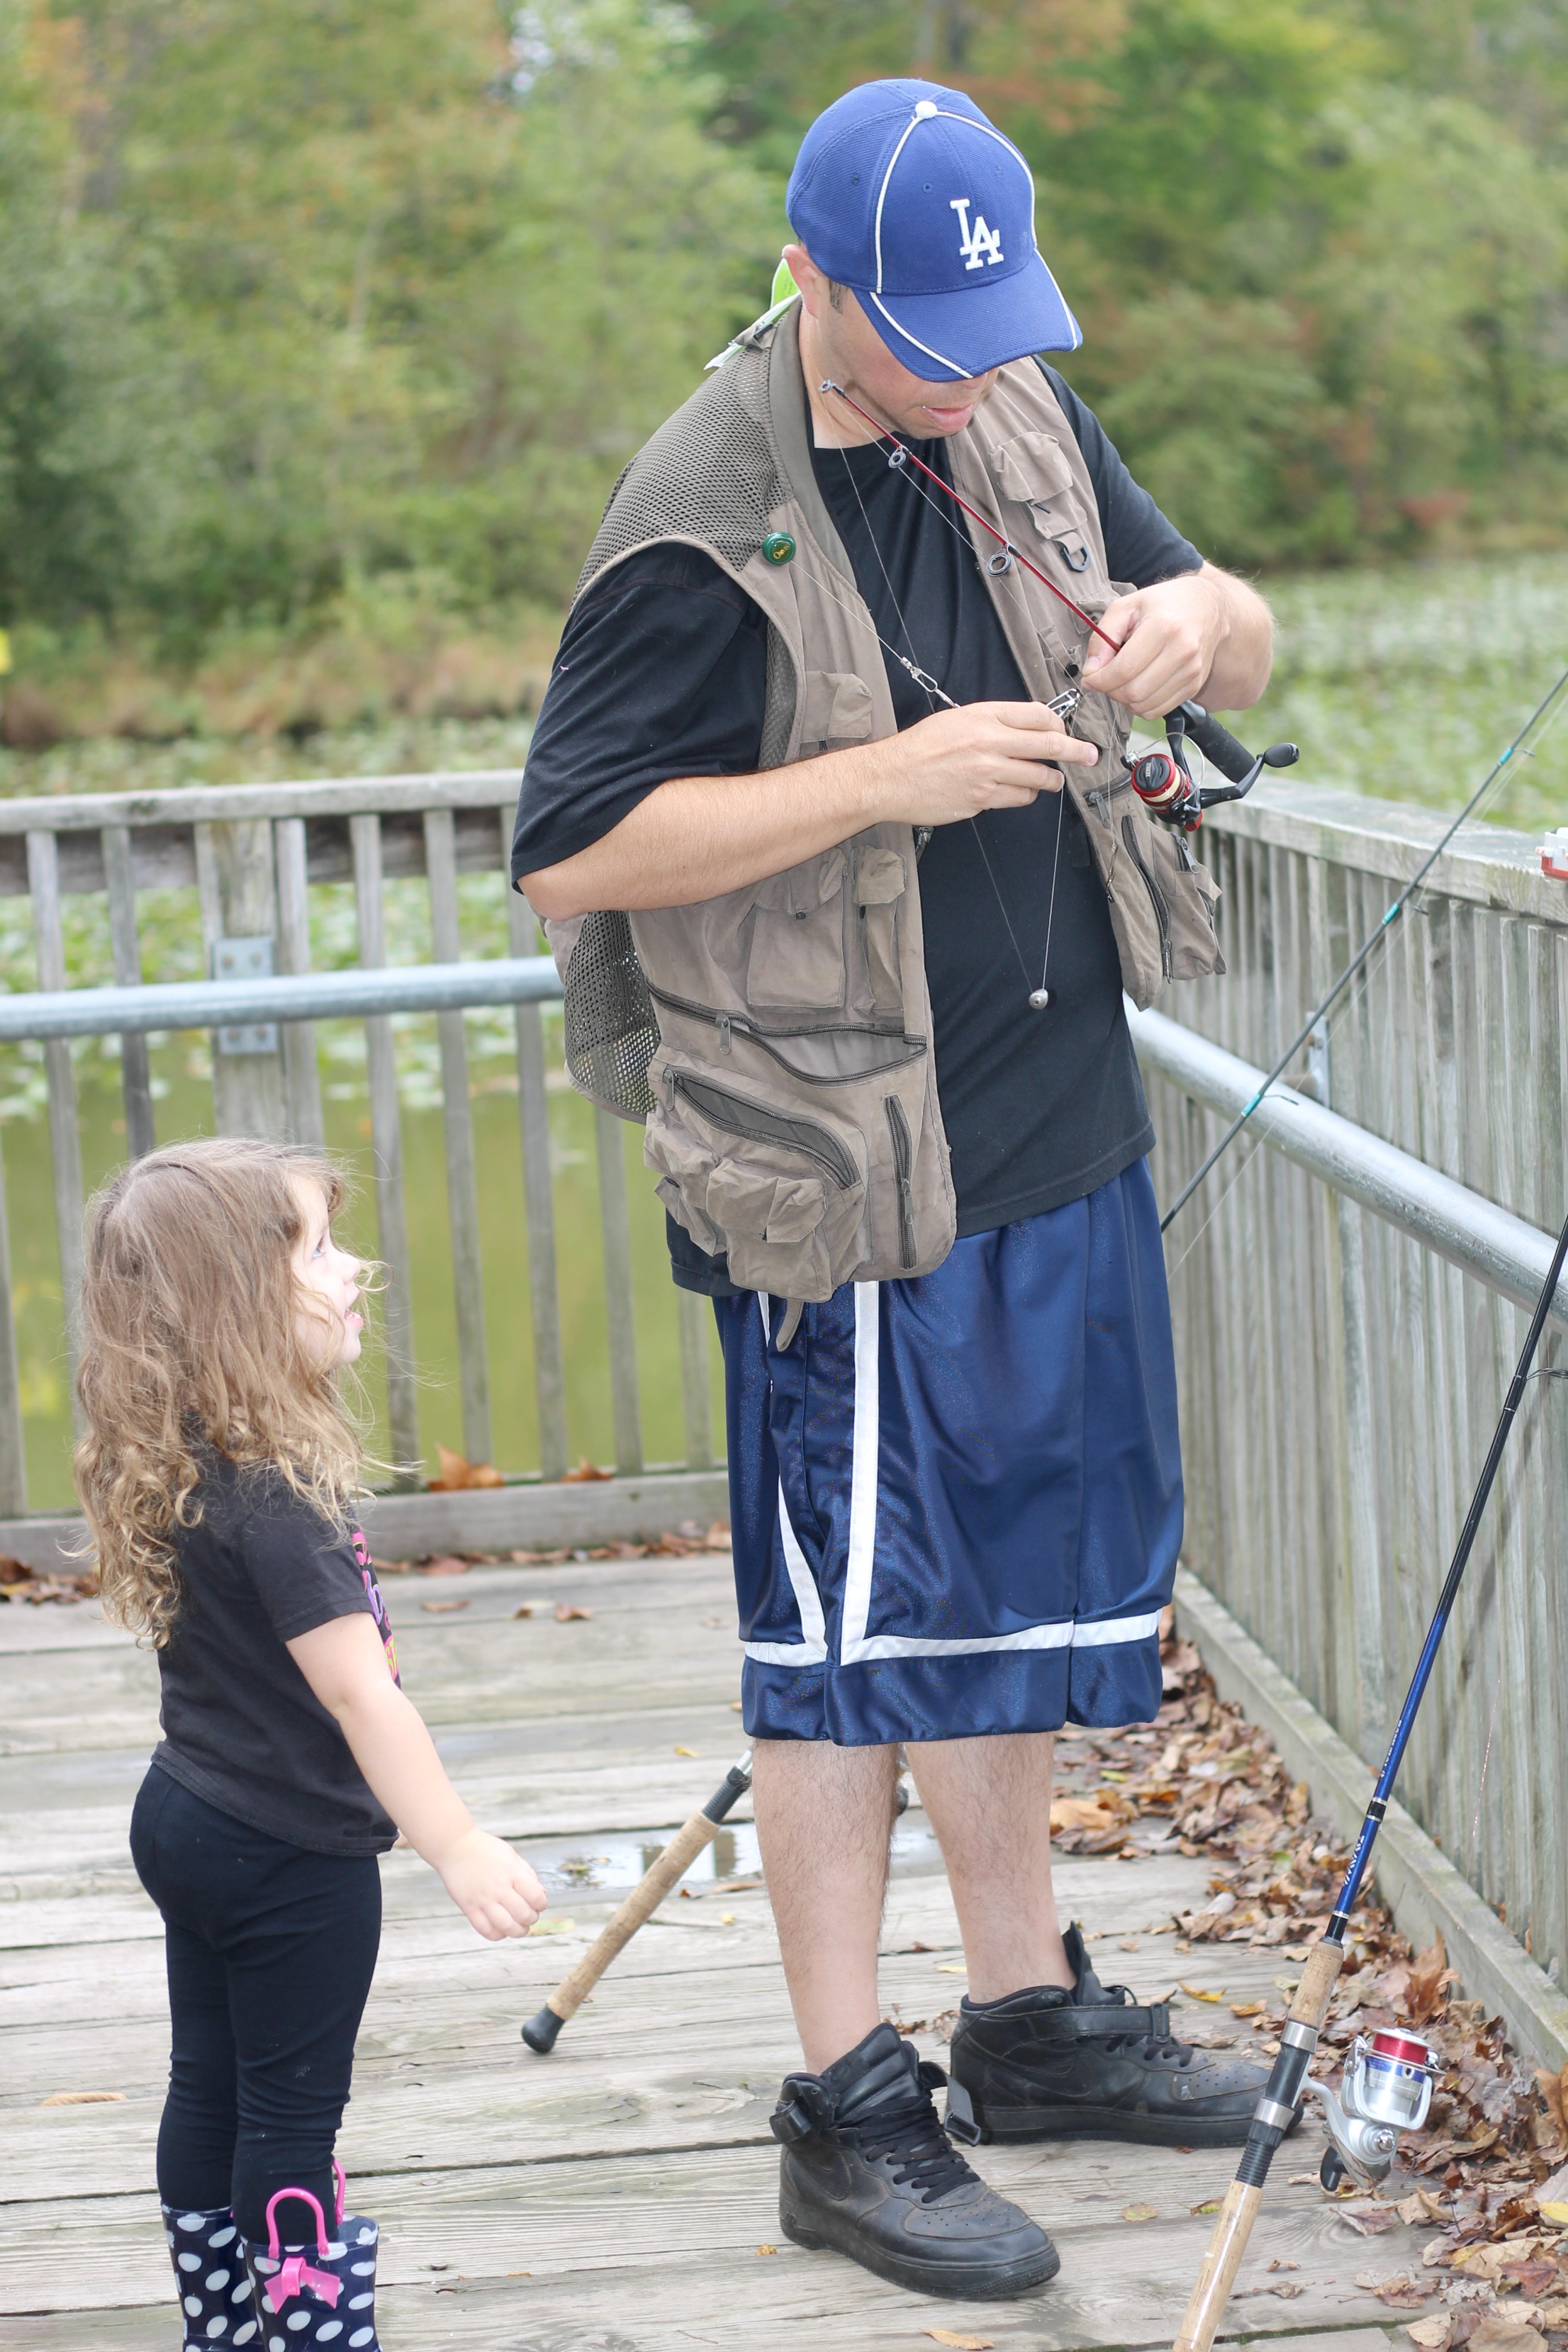 6 Tips to Get Your Kids Interested in Fishing